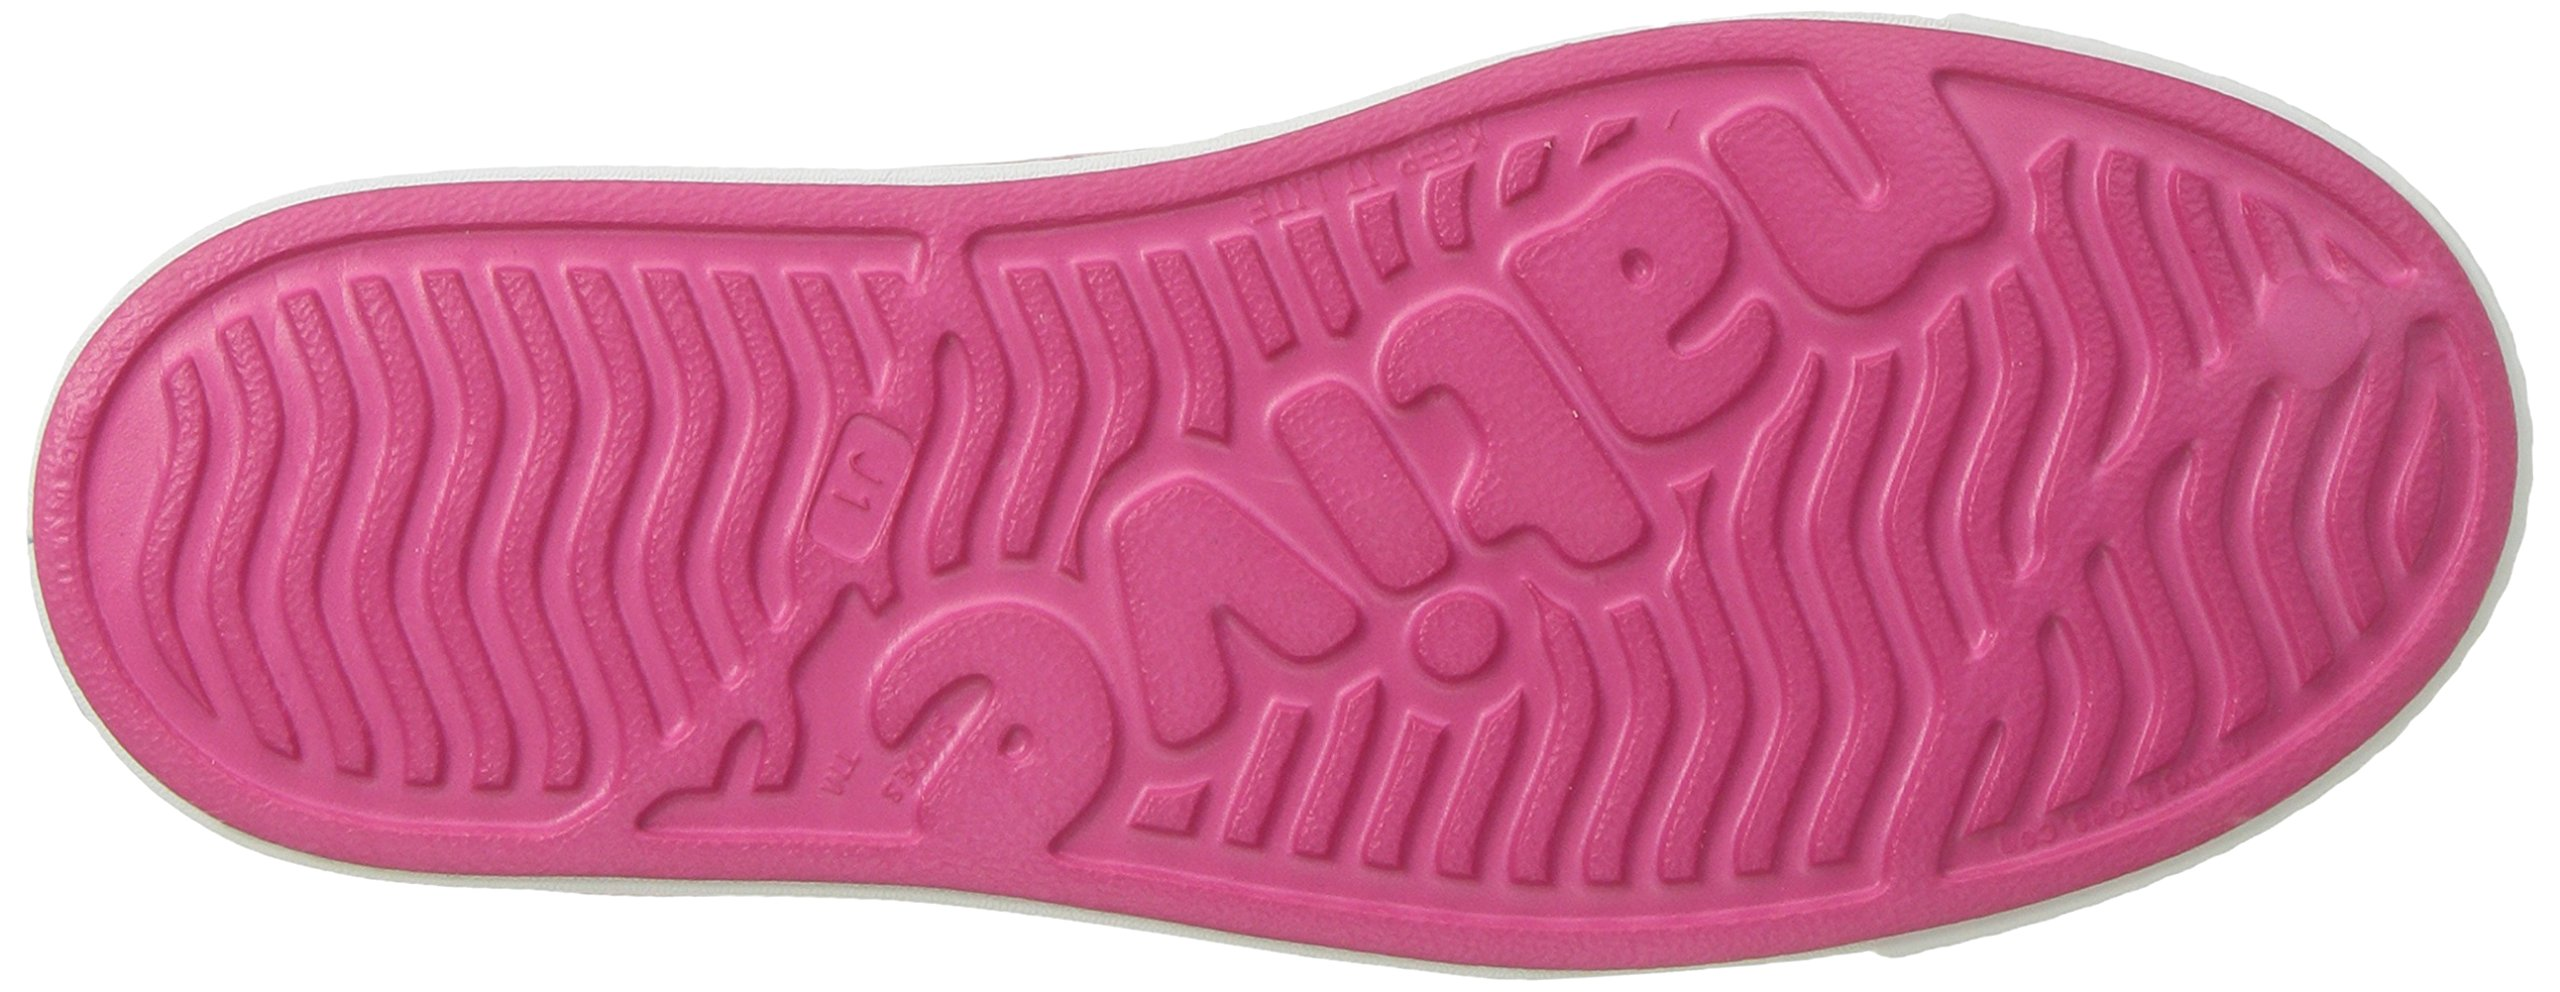 Native Kids Girls Jefferson Junior Water Proof Shoes, Hollywood Pink/Shell White, 6 Medium US Big Kid by Native Shoes (Image #3)